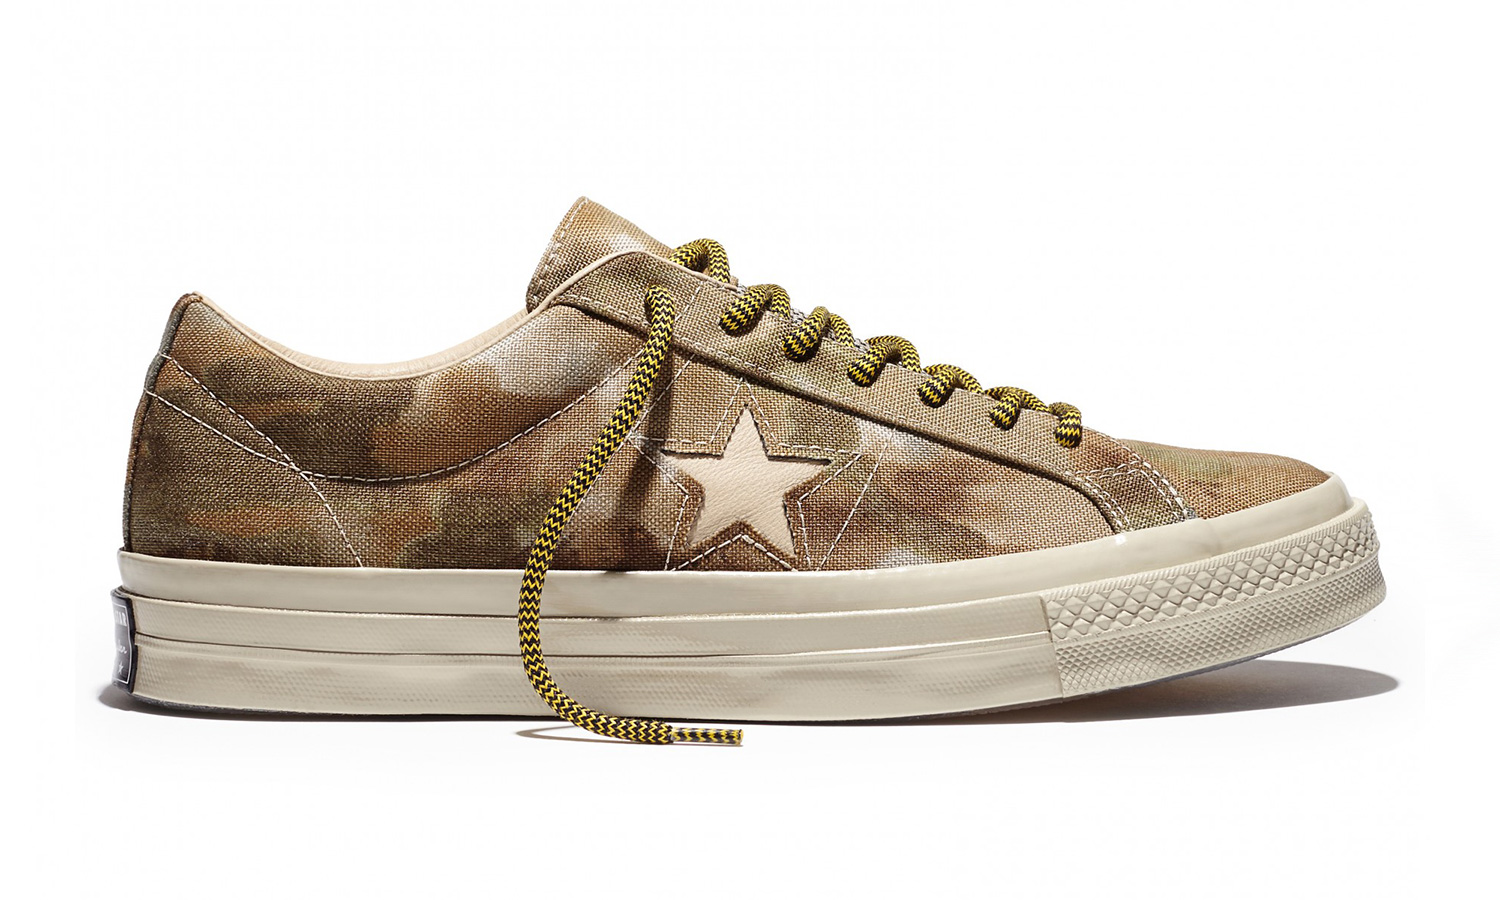 converse-first-string-one-star-74-brookwood-camo-3